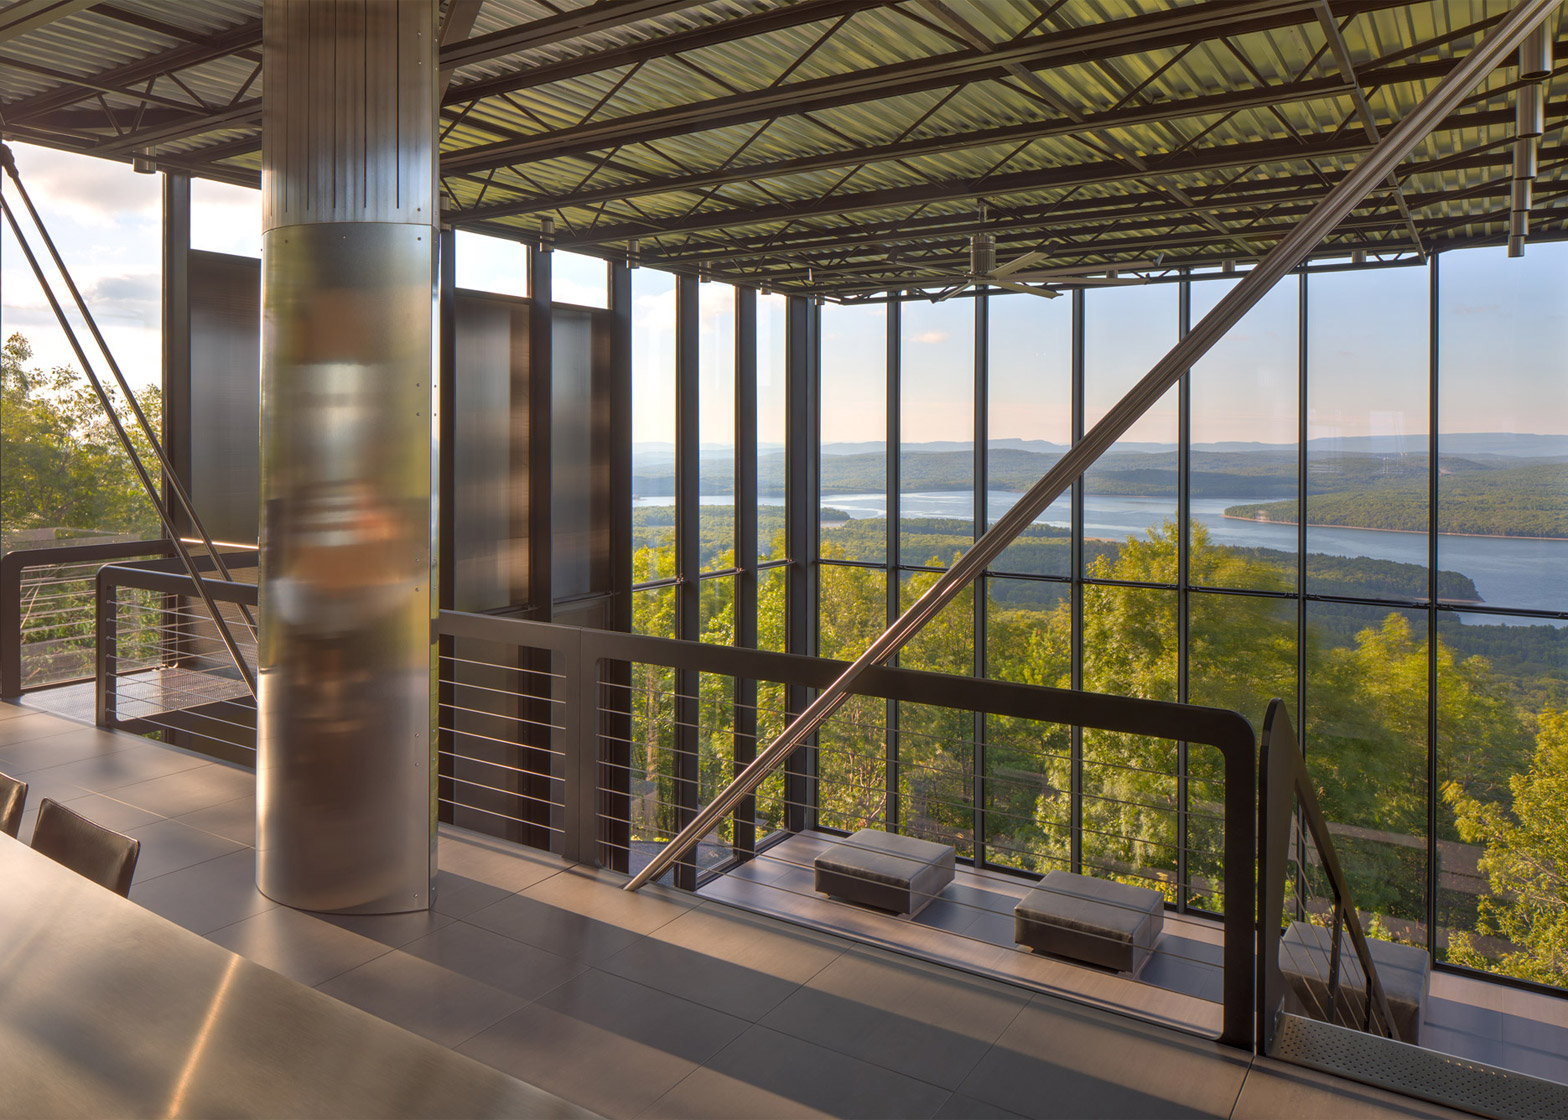 The Mirrored Hideaway in the Catskill Mountains 10